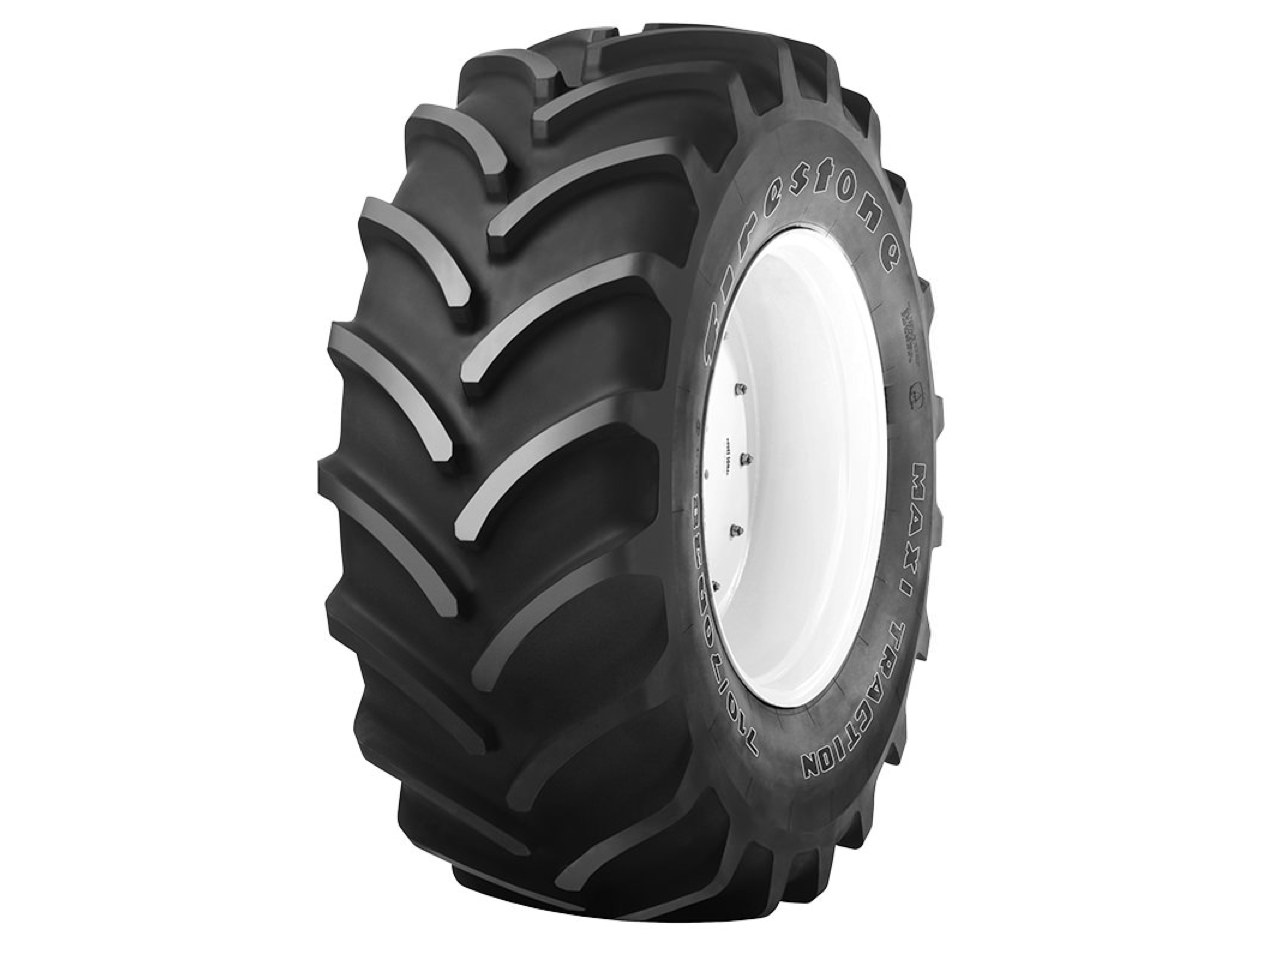 Firestone Maxi Traction Maxi Traction 710/70R38 171D